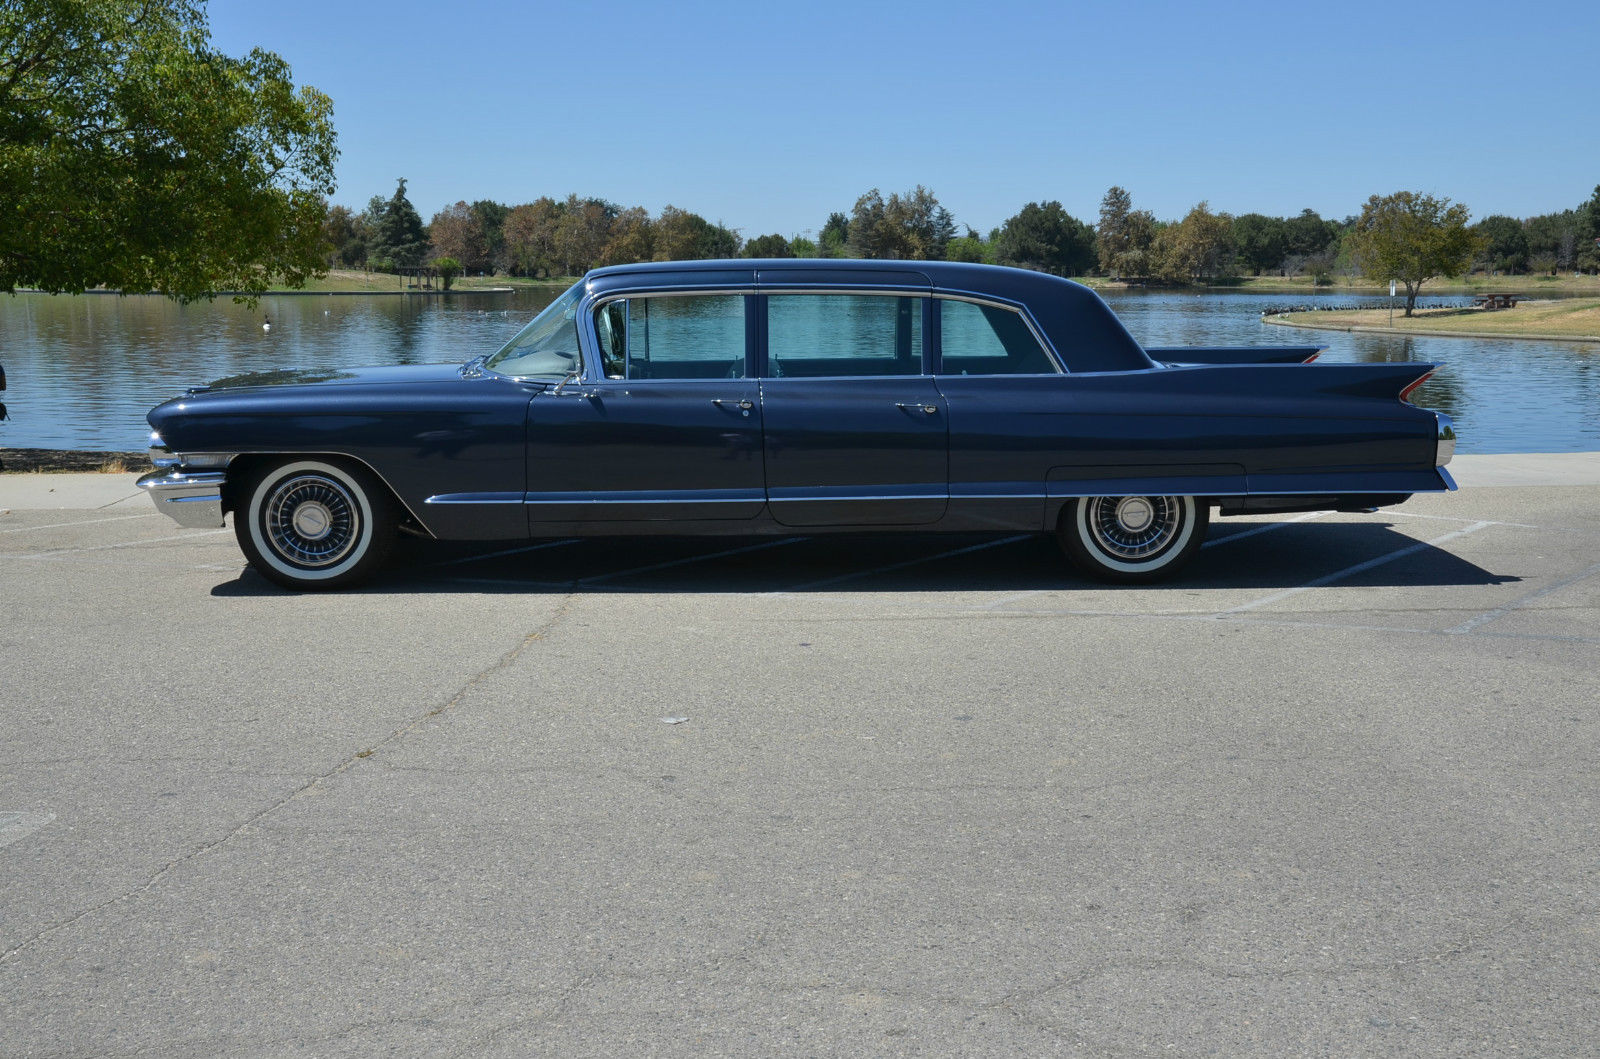 Cadillac fleetwood factory limo show car limousines for sale